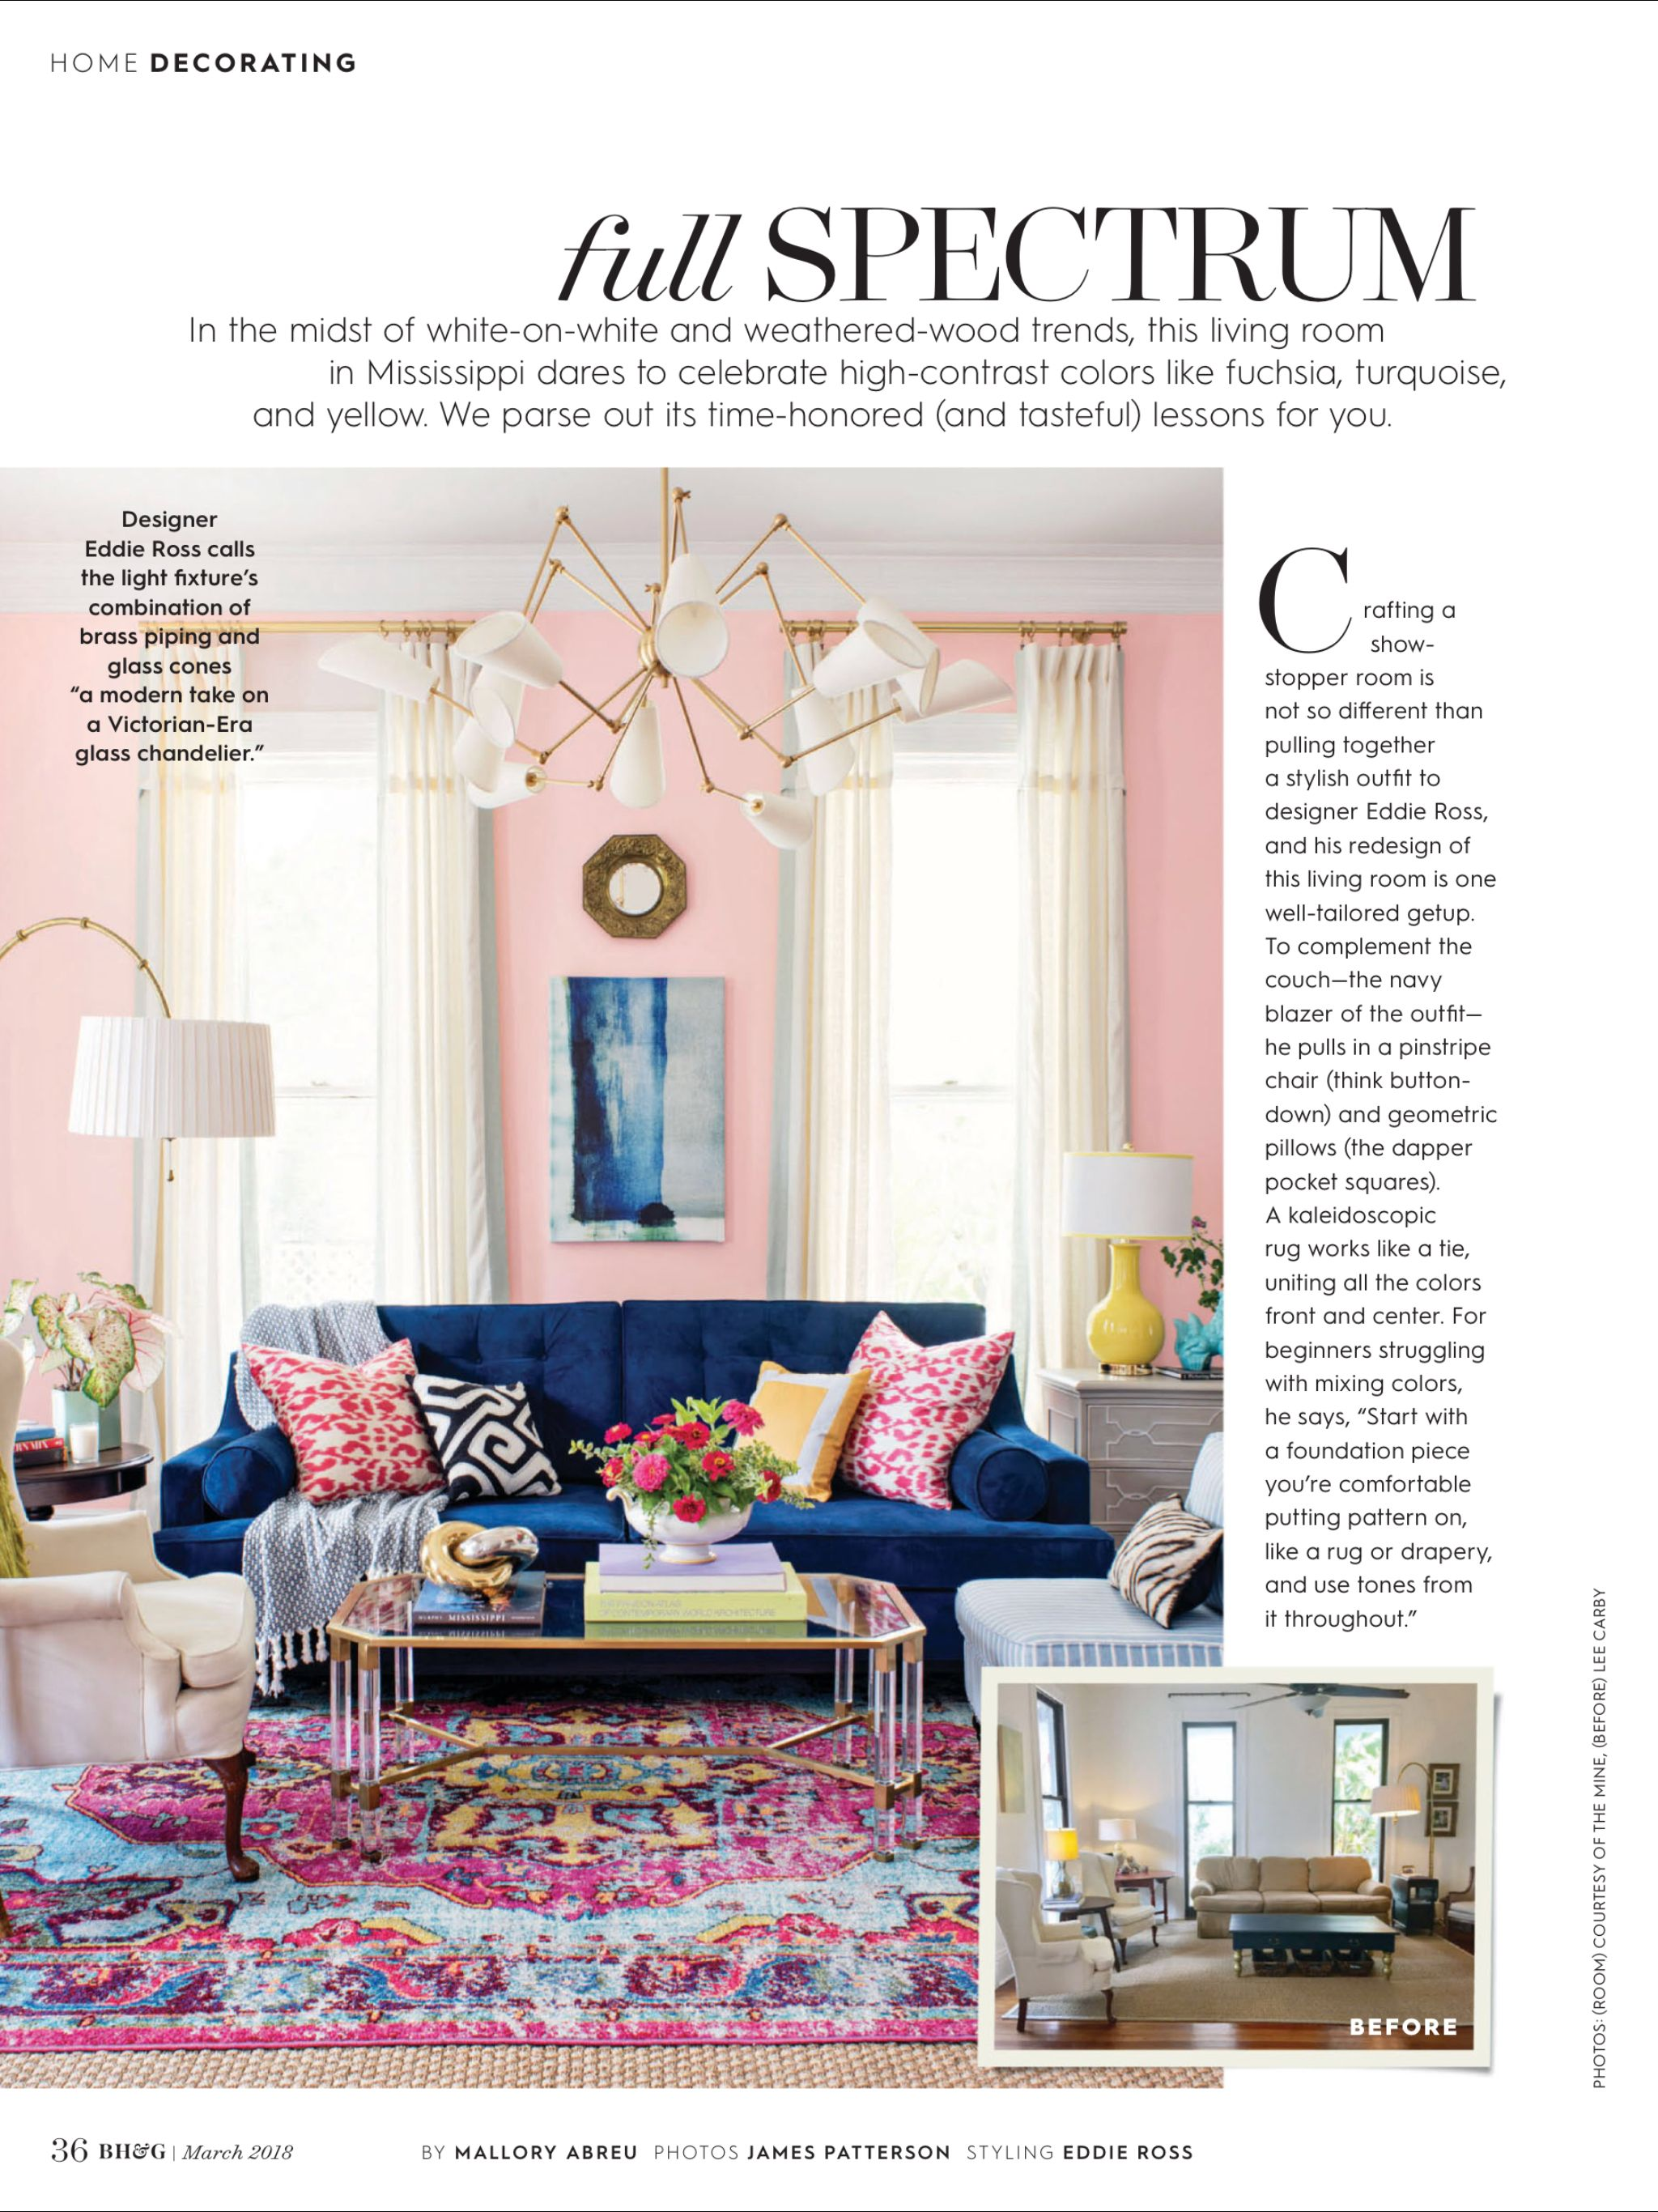 Full Spectrum From Better Homes And Gardens March 2018 Read It On The Texture App Unlimited Access To 200 Top Magazines Home Decor